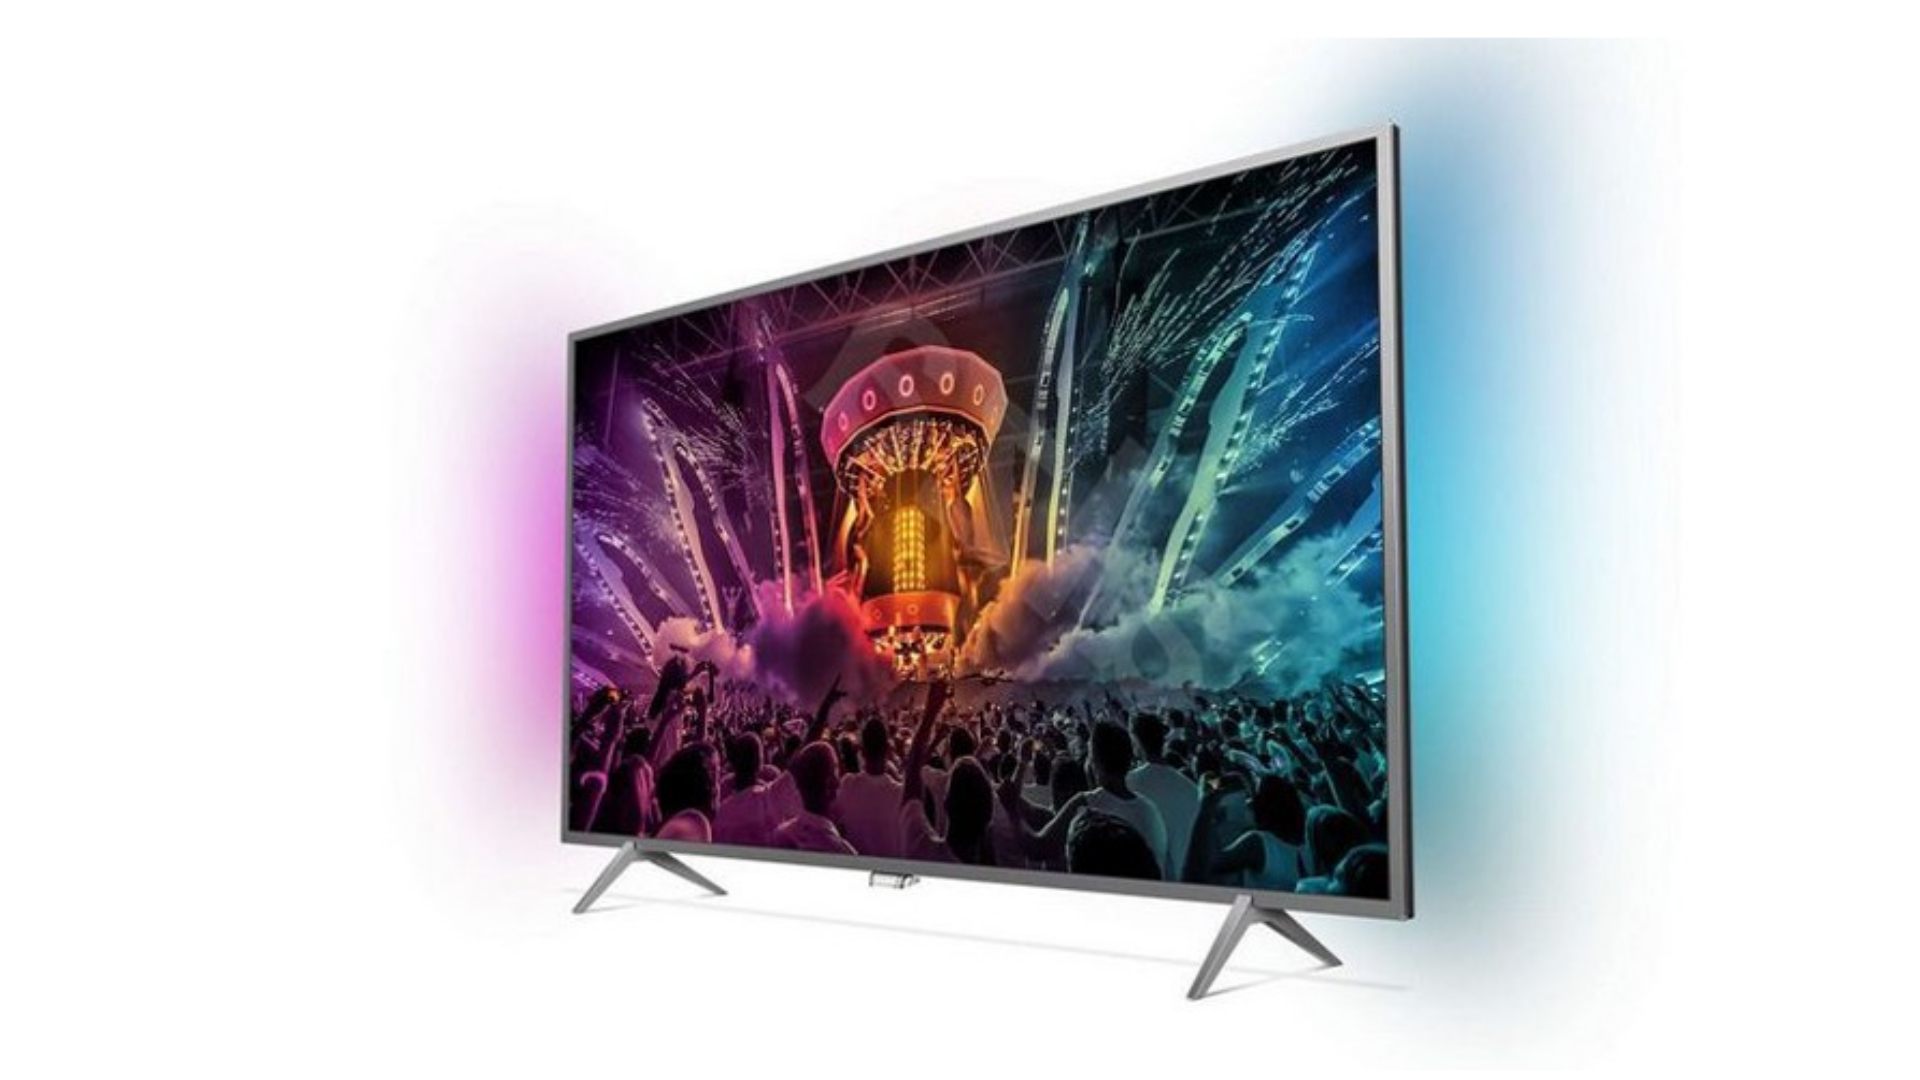 172c468523d The best cheap 4K TV deals in May 2017 - MGI Distribution